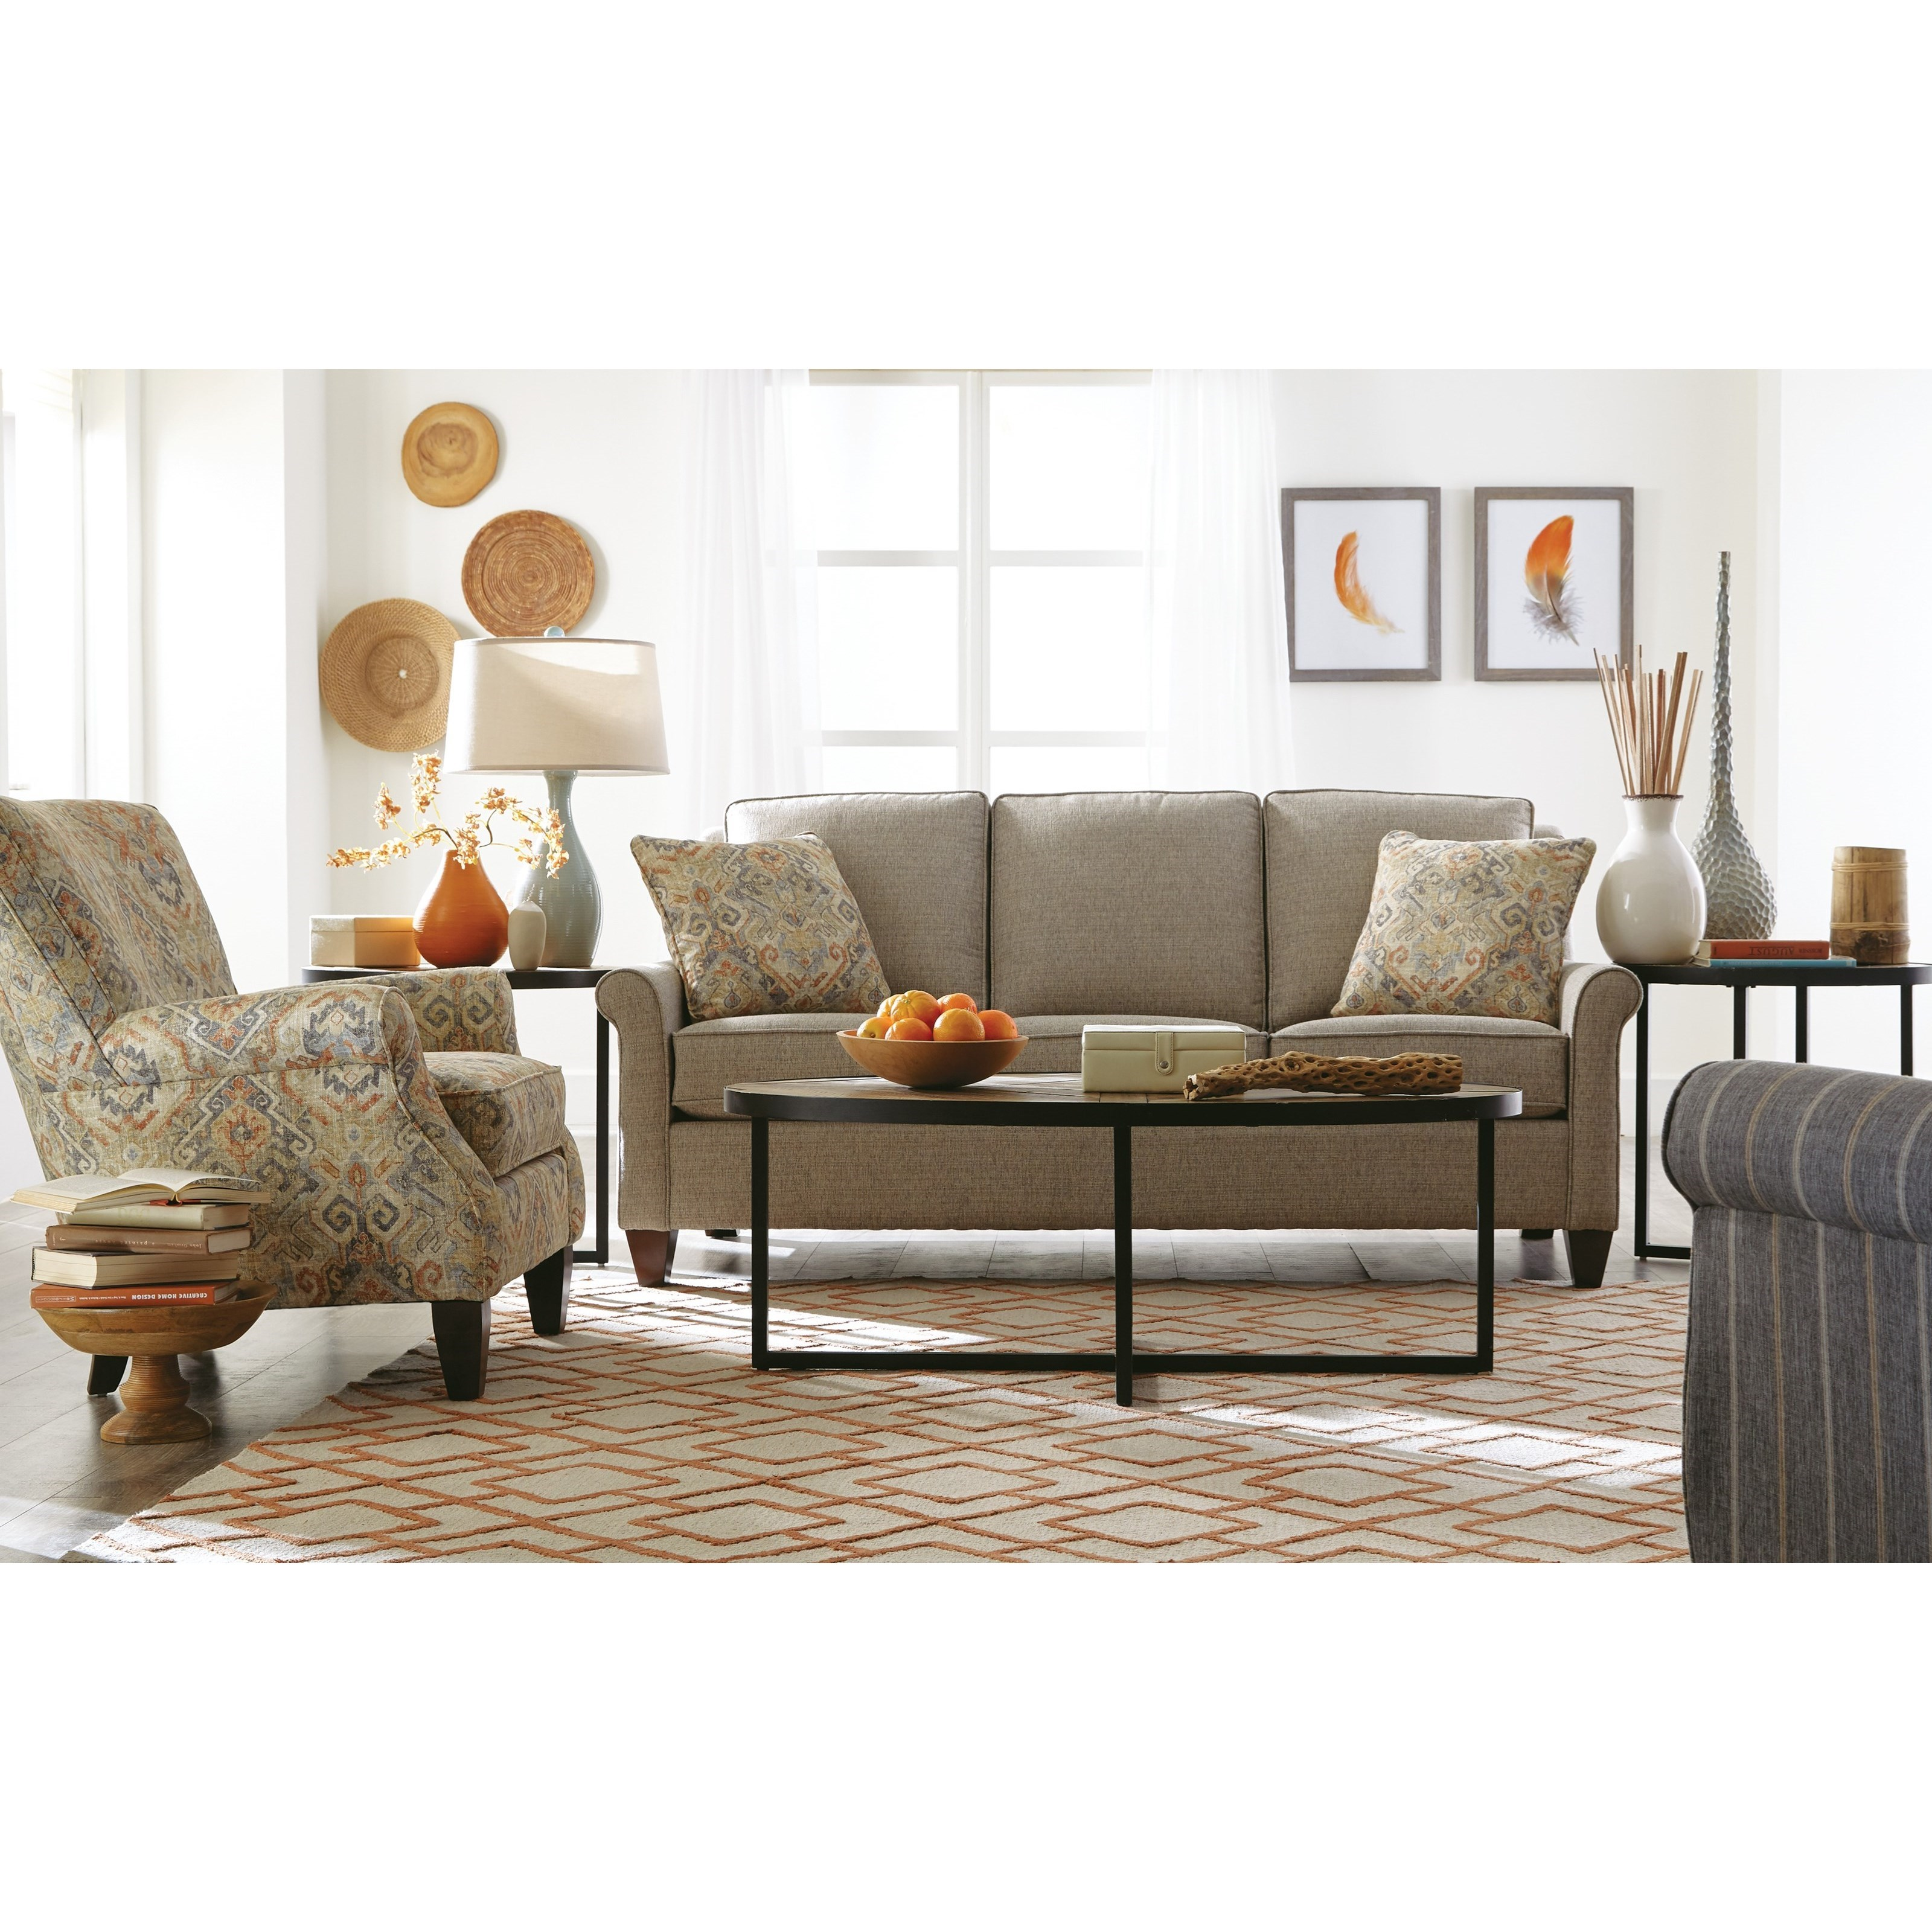 Ashley Furniture Slc: Casual 79 Inch Sofa With Queen Sleeper Mattress By